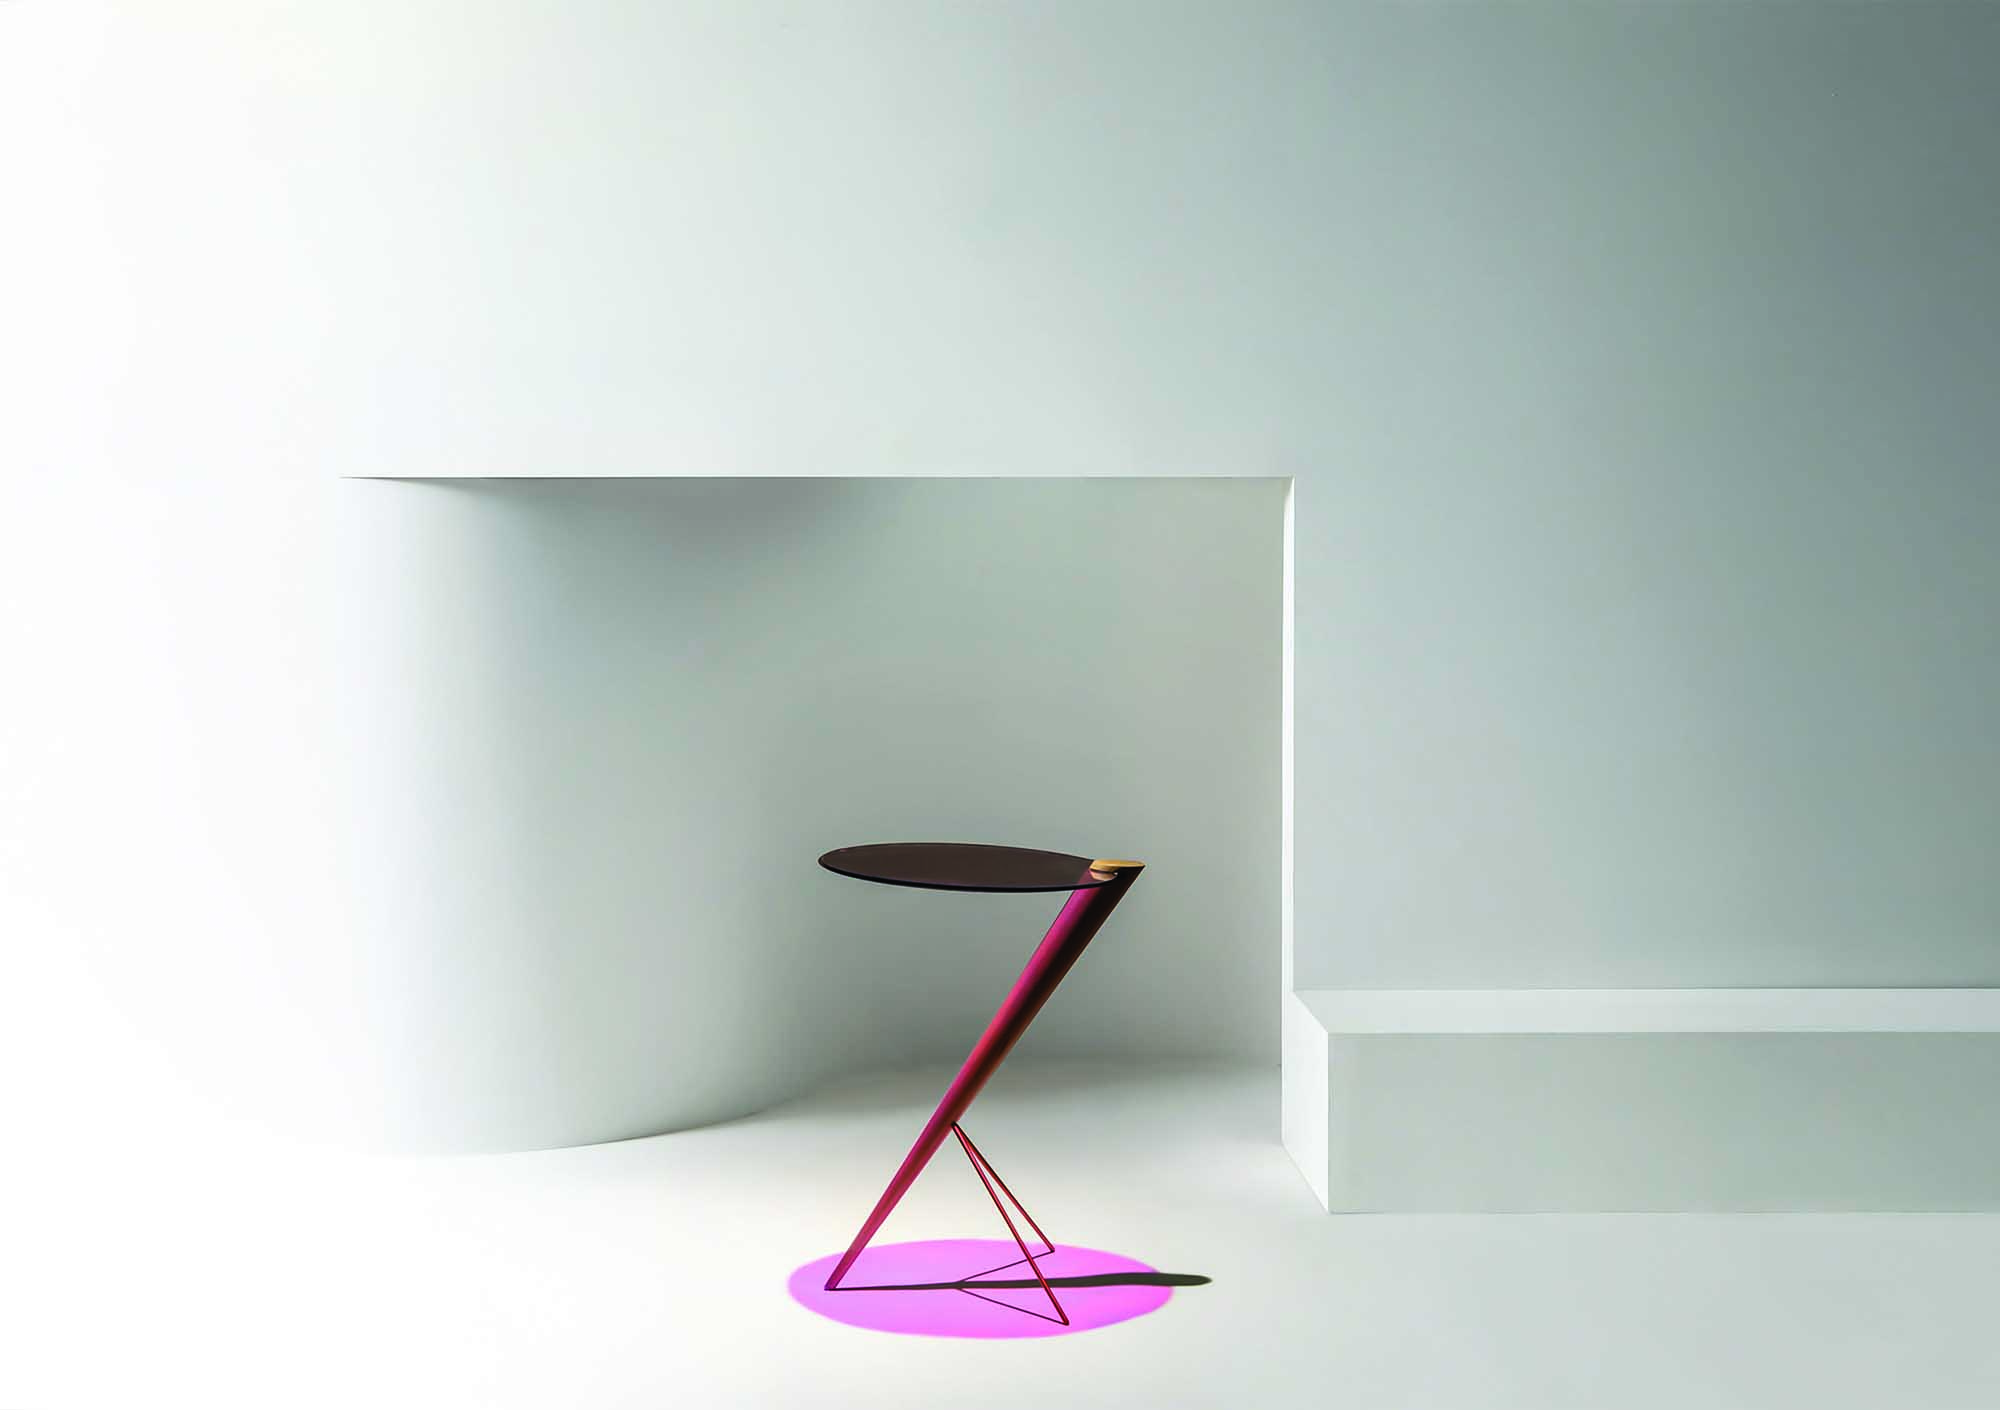 CHROIC SIDE TABLE by Callan Kneale